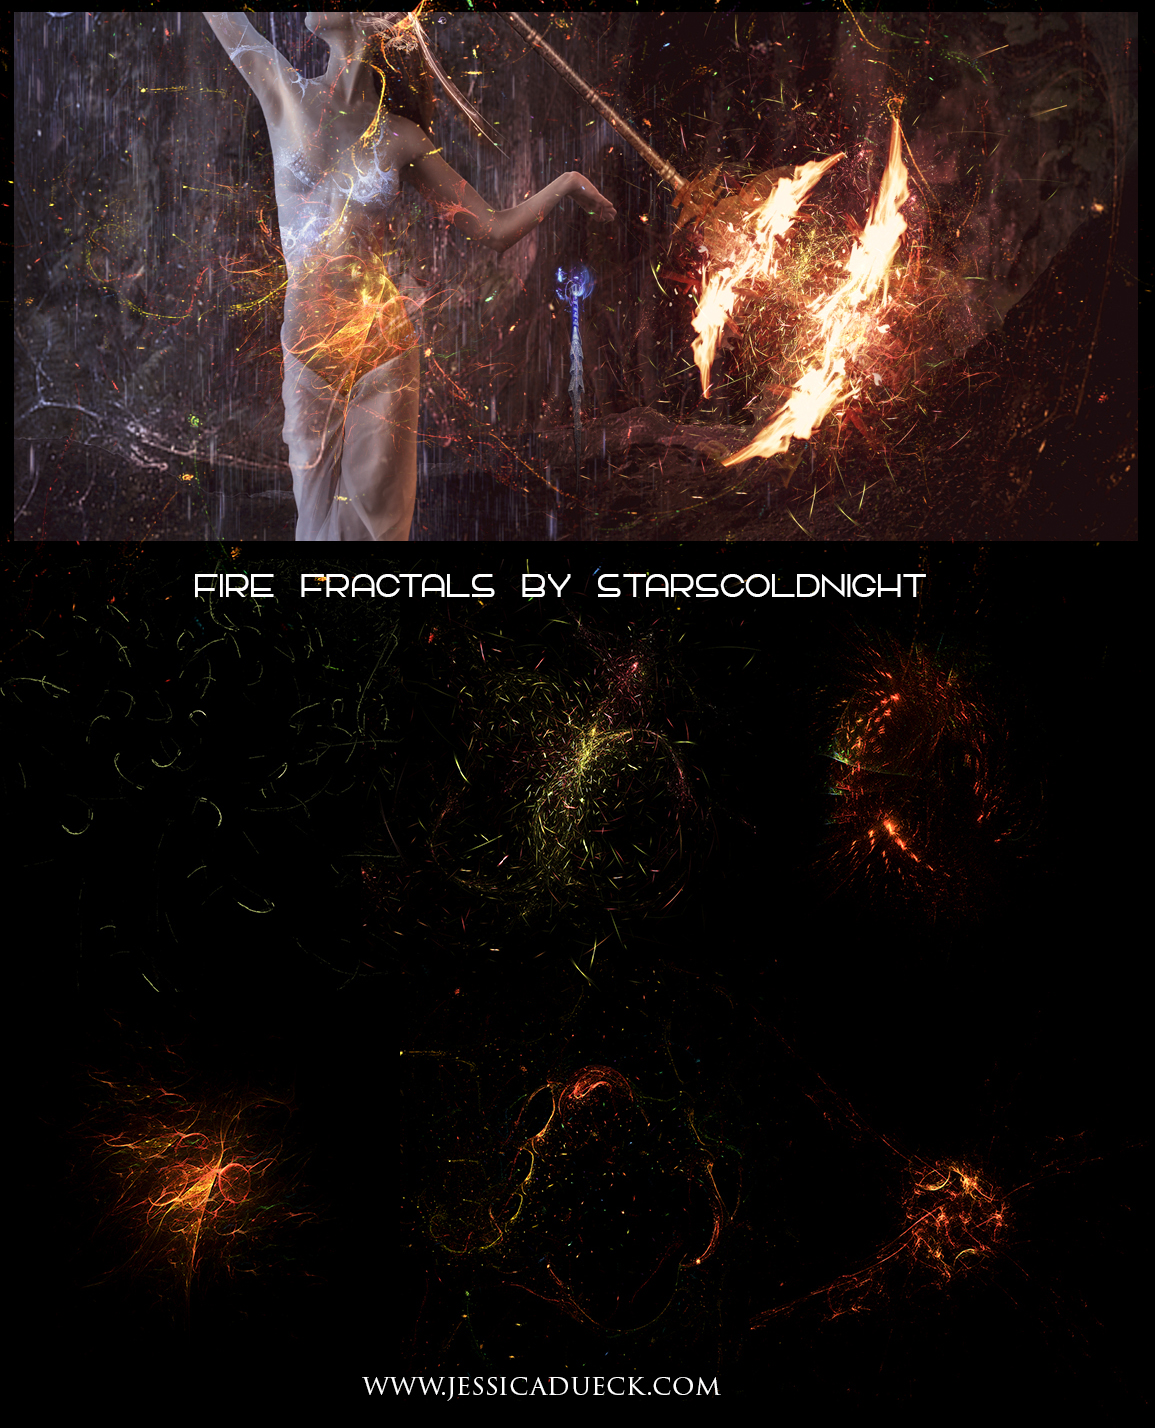 Fire sparks fractals by starscoldnight by StarsColdNight